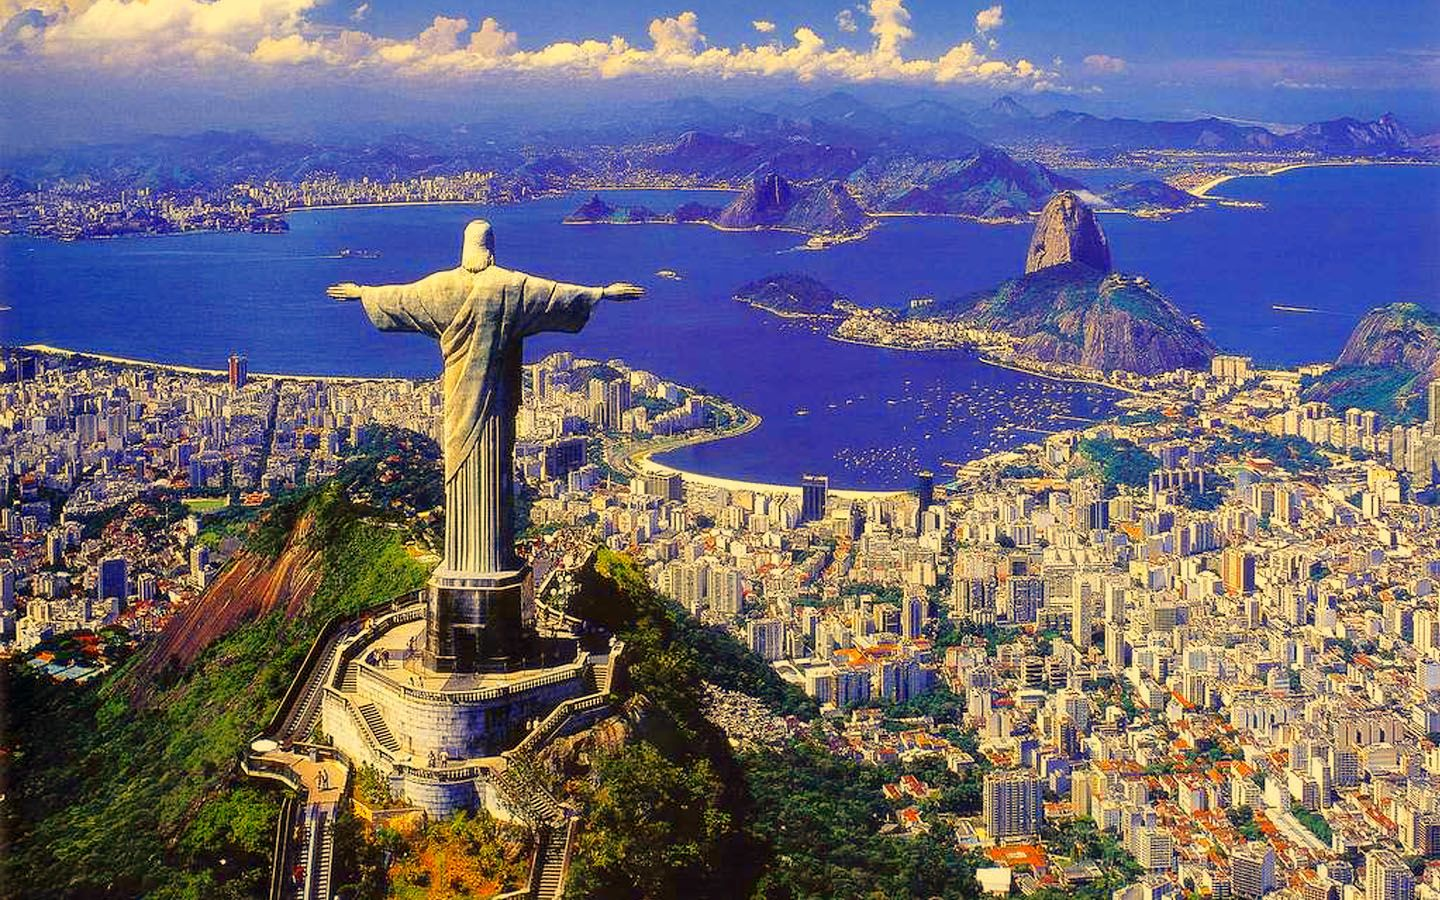 1440x900 High Res Wallpaper: High Resolution Brazil Wallpaper HD Full Size